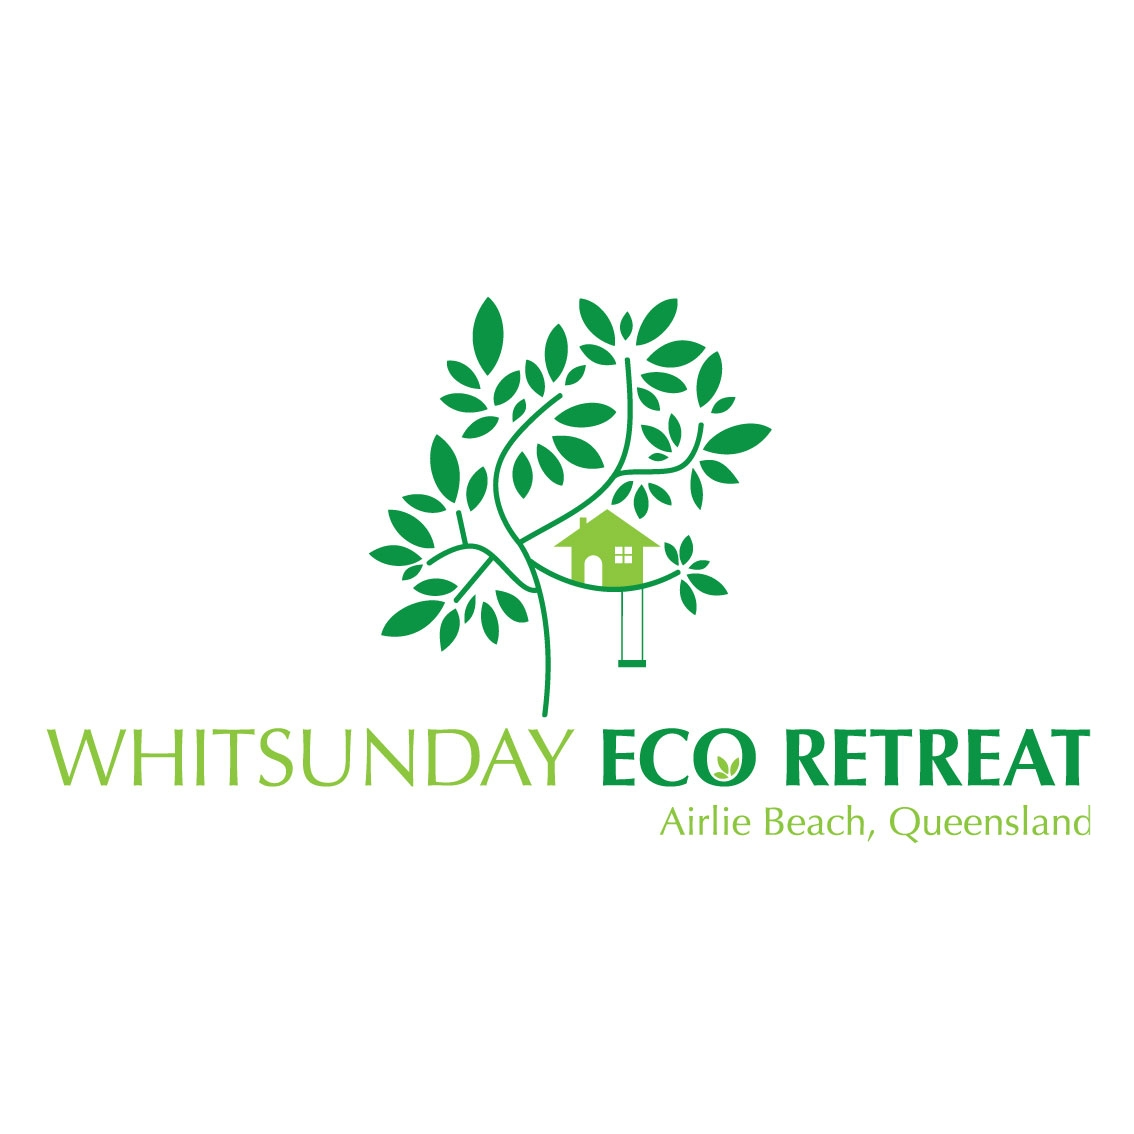 WHITSUNDAY ECO RETREAT